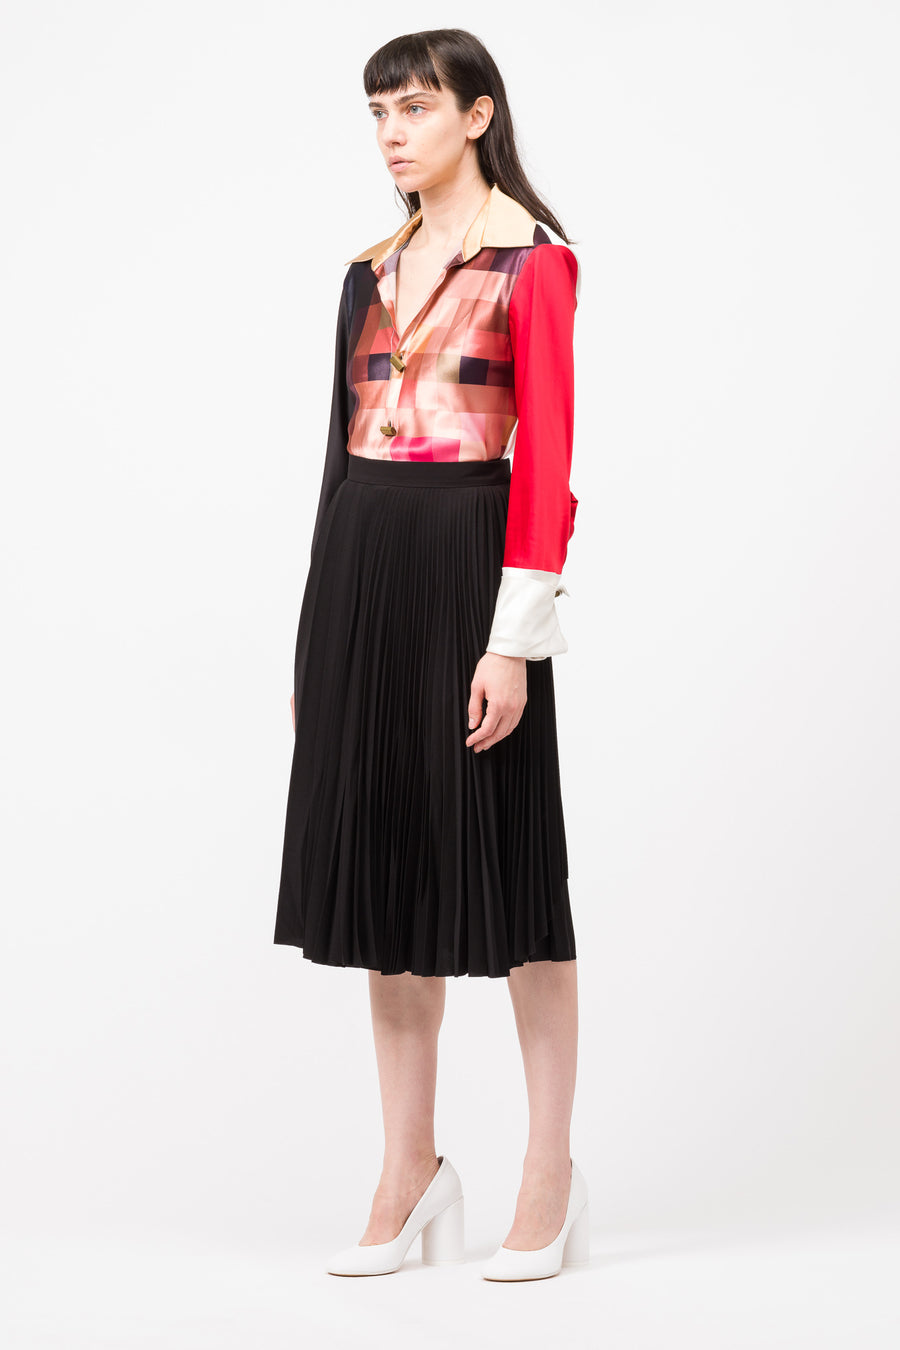 Acne Studios Ilky Flu Poly Skirt in Black - Notre